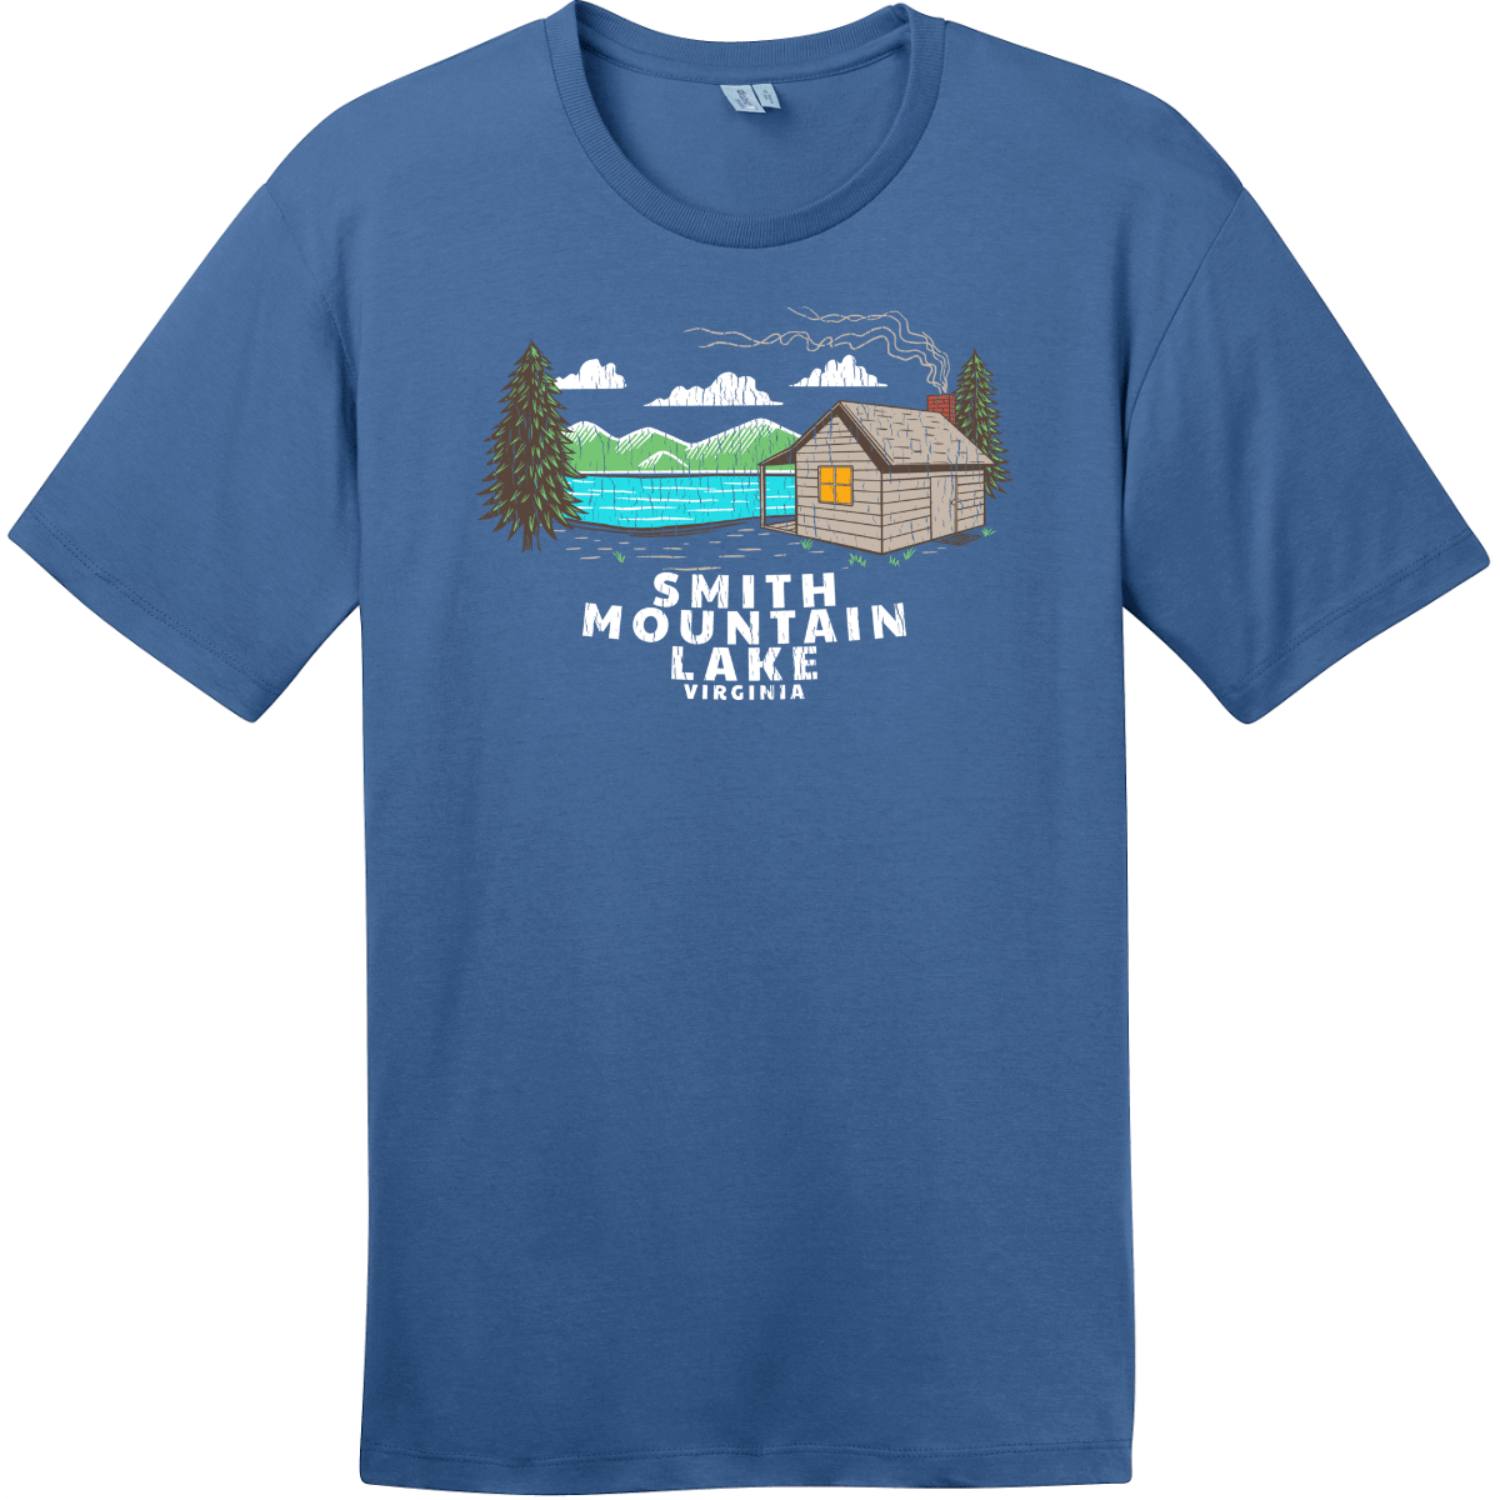 Smith Mountain Lake Vintage T-Shirt Maritime Blue District Perfect Weight Tee DT104